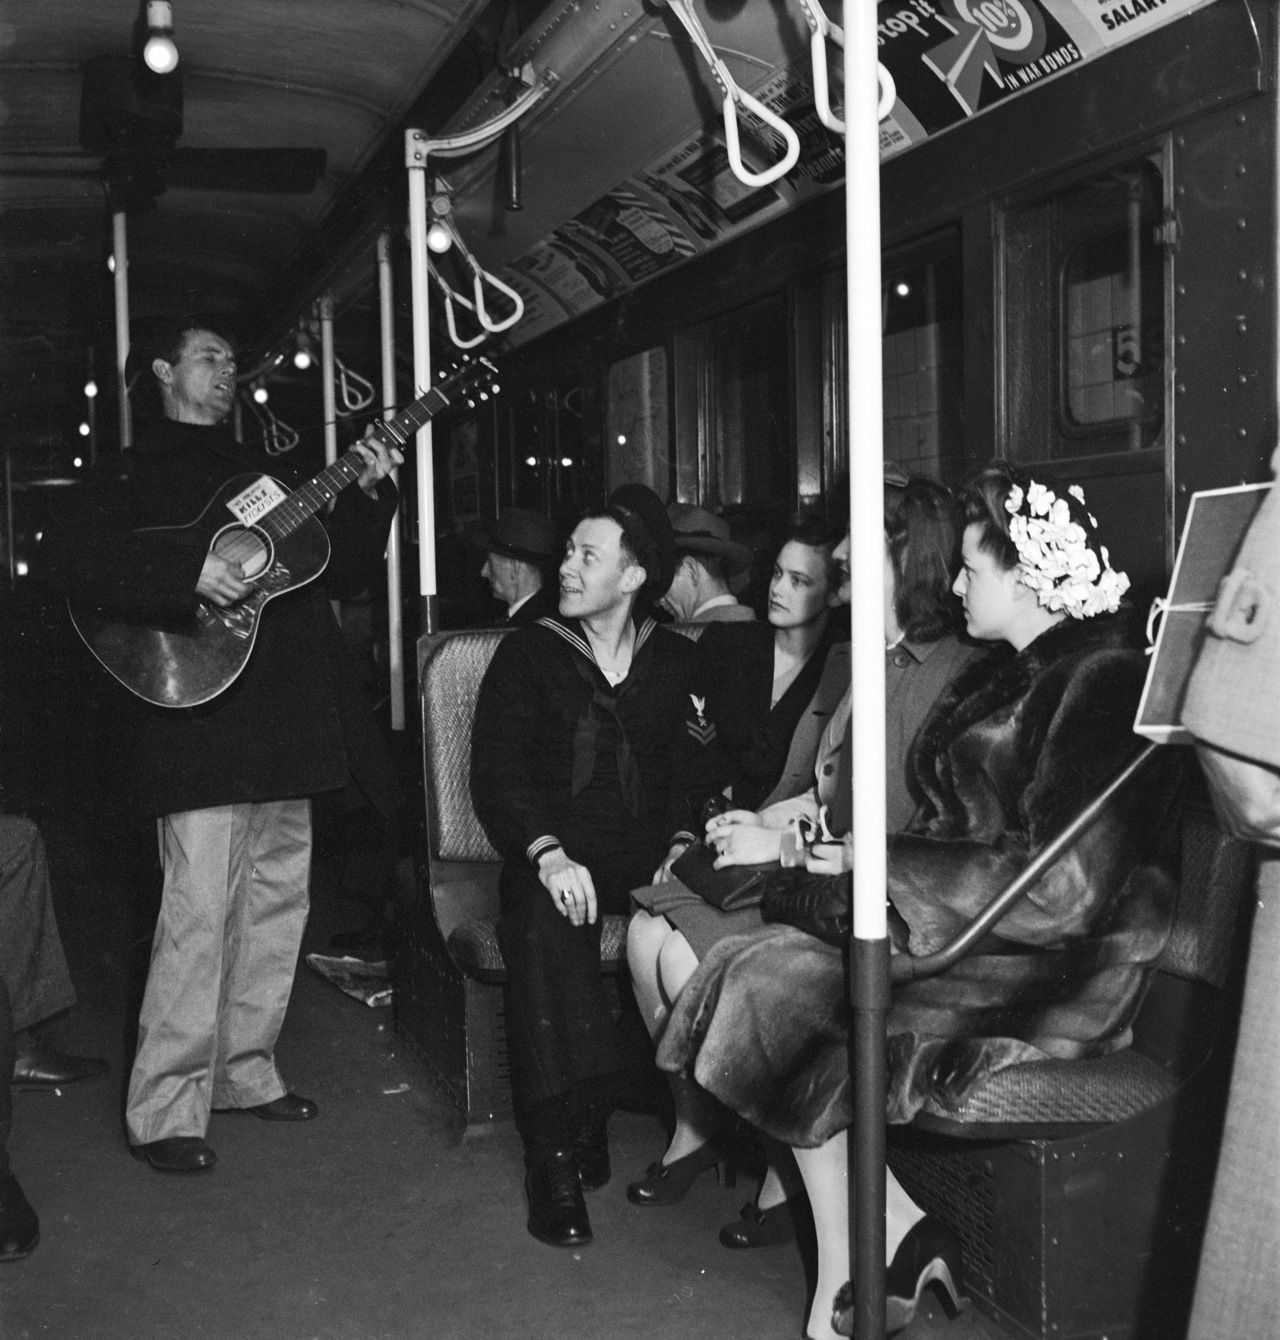 Woody Guthrie in the New York City subway  Source : Reddit